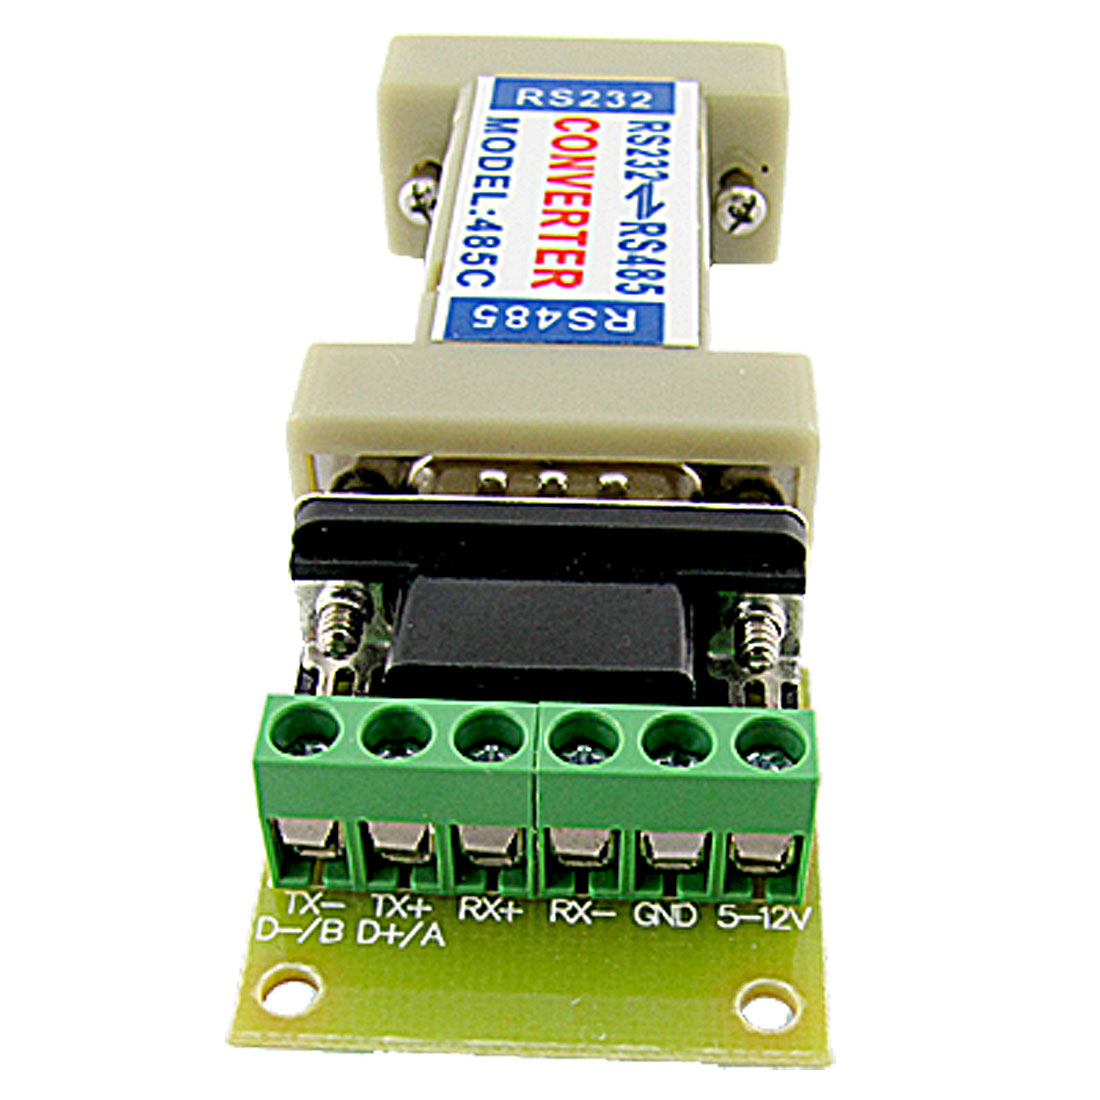 RS232 to RS485 Communication Drivers Signal Converter Adapter